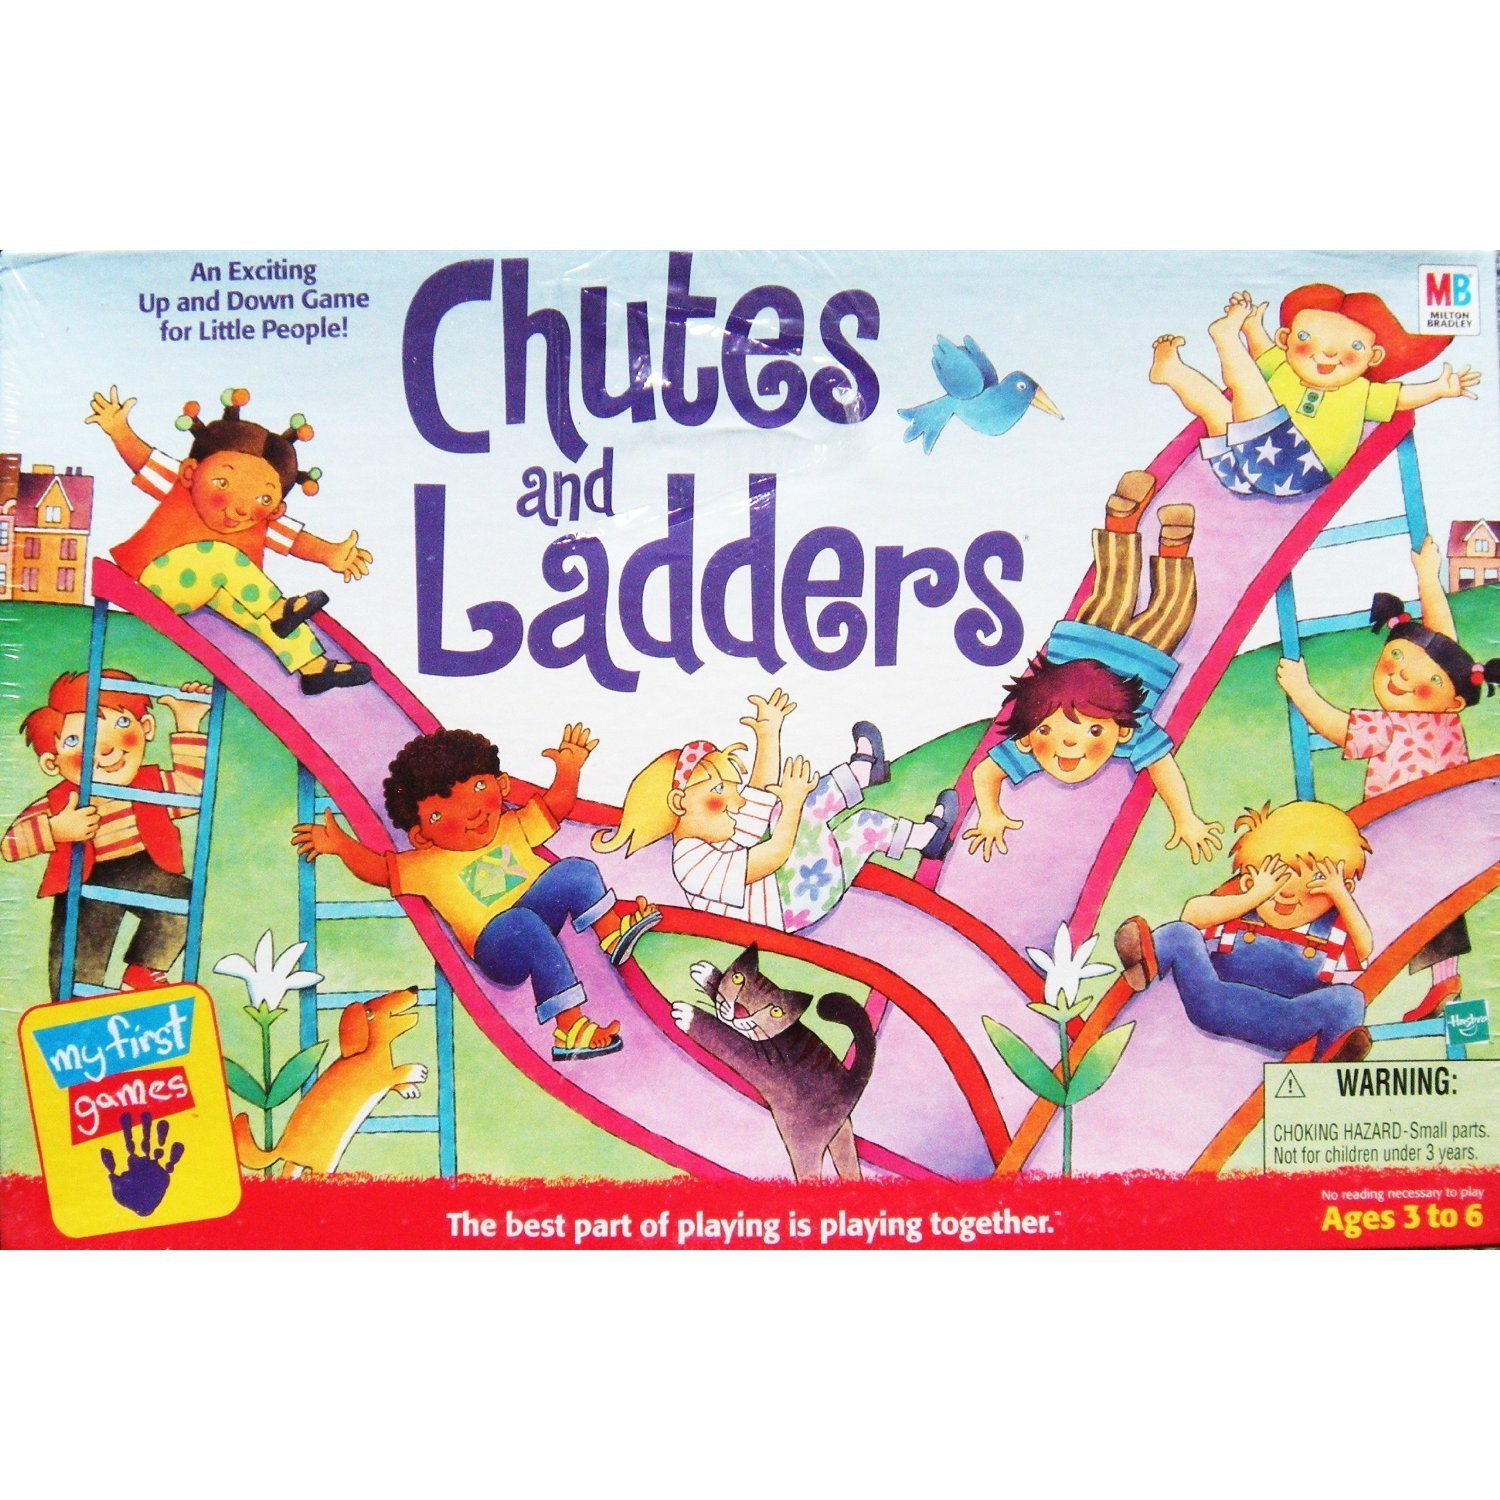 New - Vintage 1999 Milton Bradley My First Games Chutes and Ladders Board Game